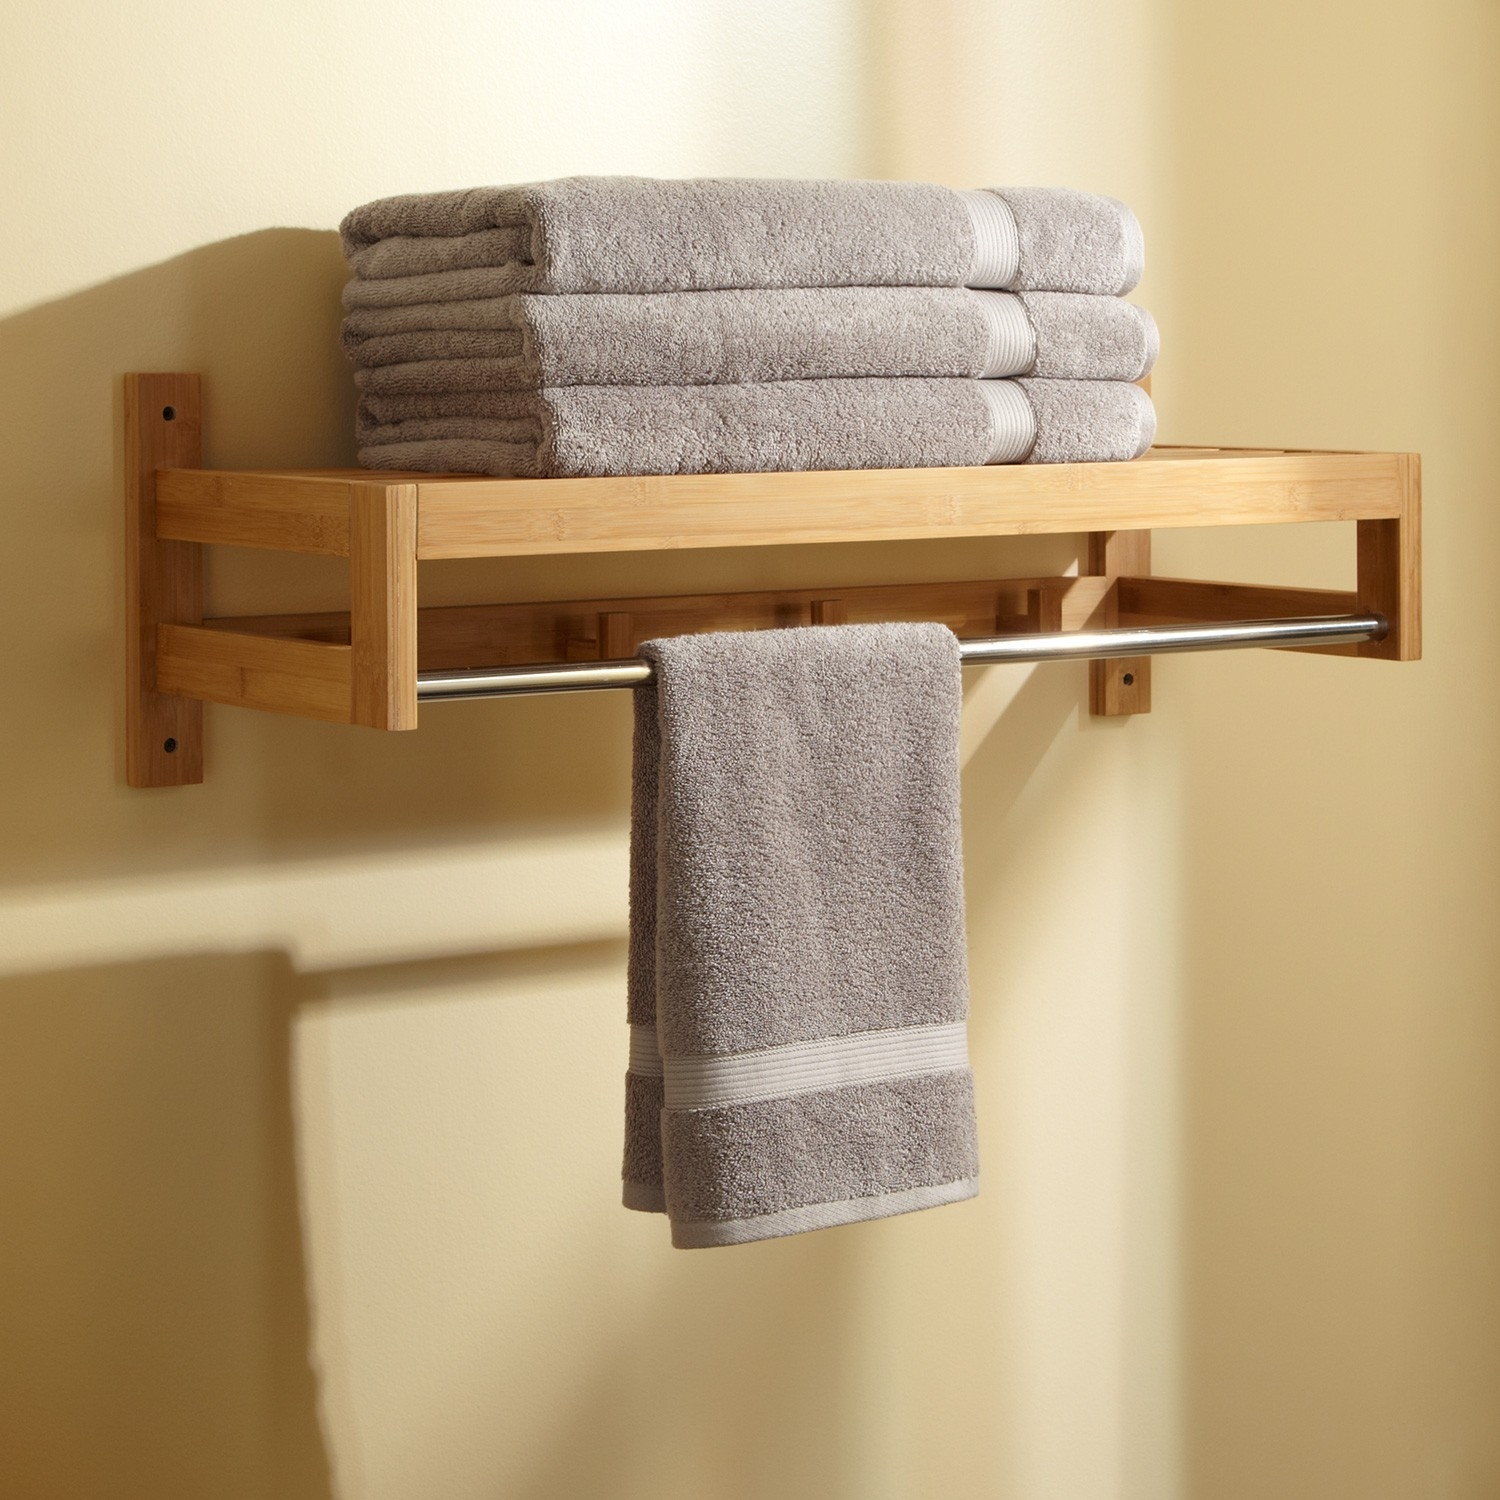 Bathroom Cabinets With Towel Hooks